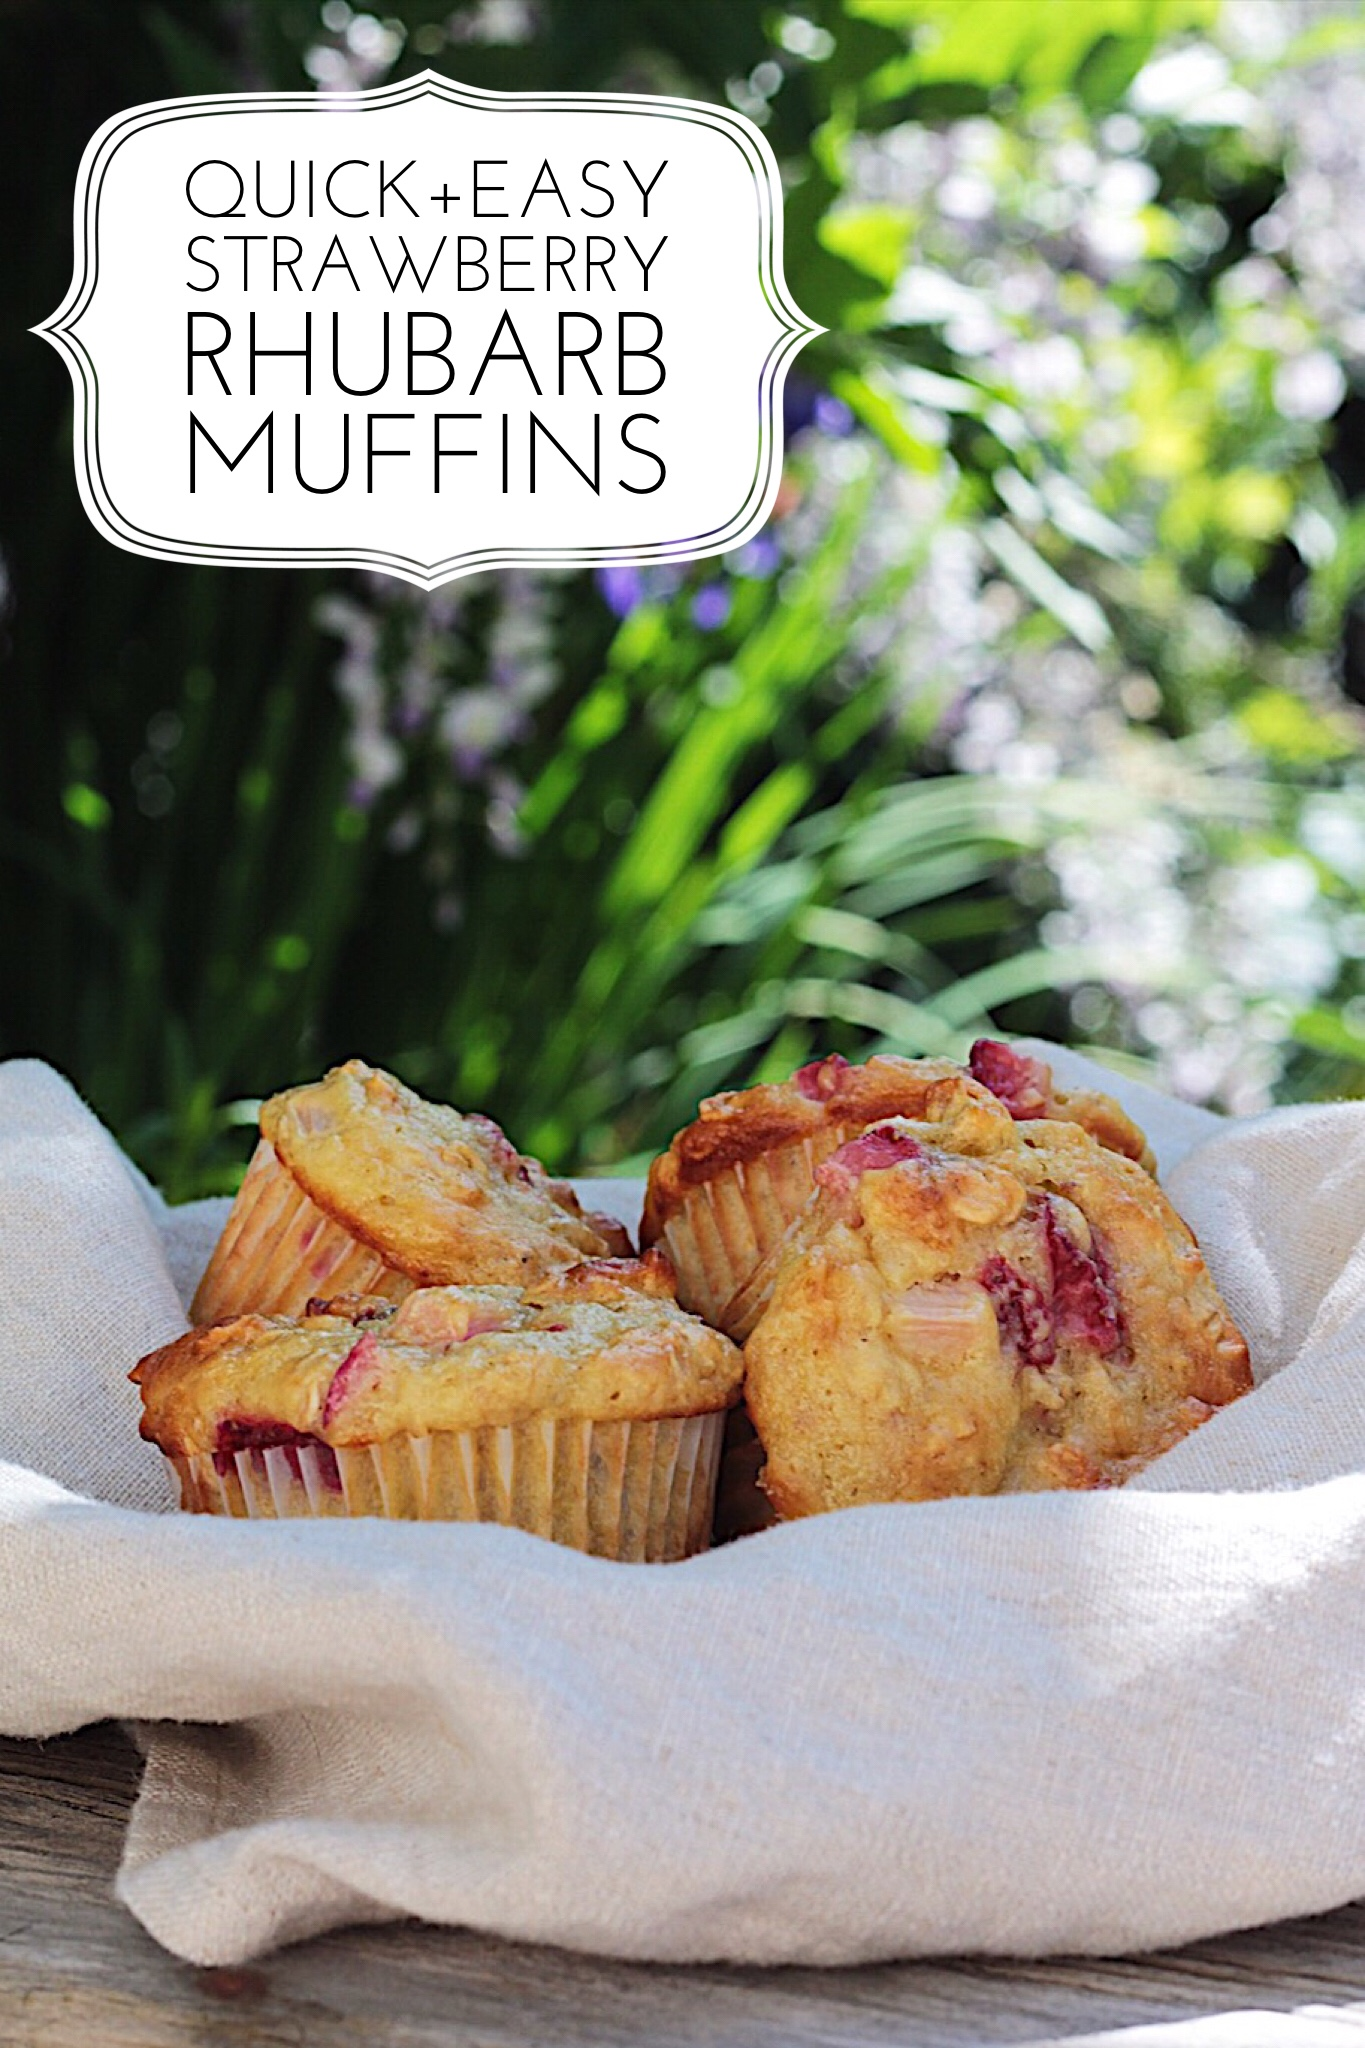 Quick and Easy Strawberry Rhubarb Muffins